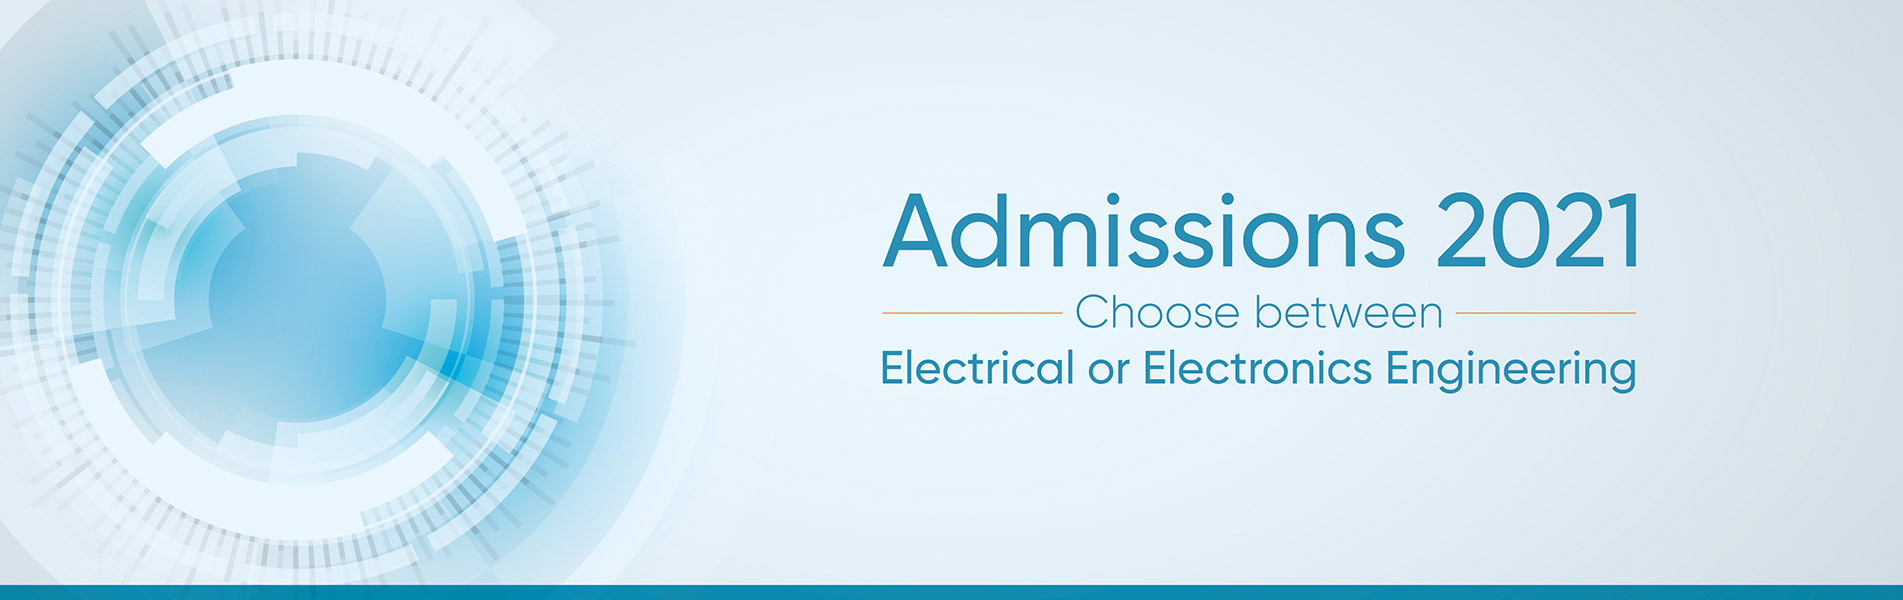 Admission 2021, electrical, electronics engineering